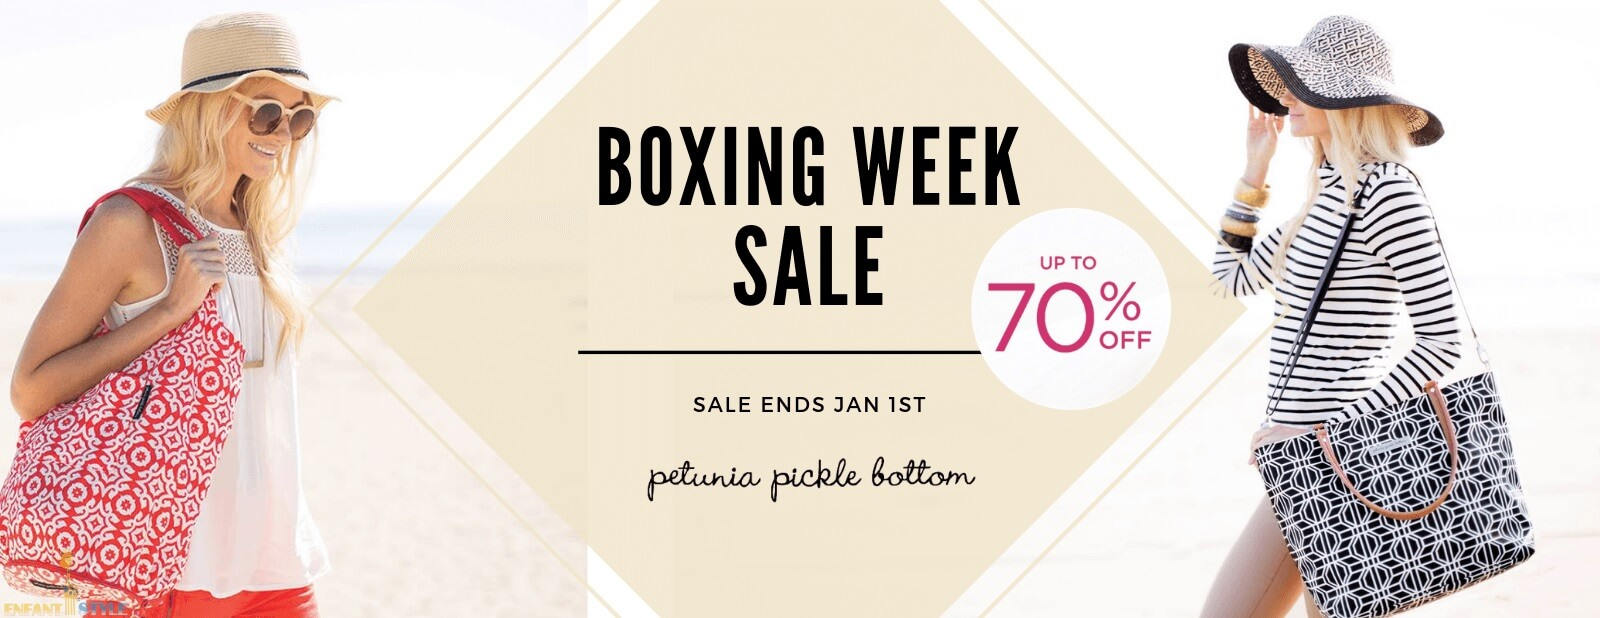 petunia pickle bottoms boxing day sales at Enfant Style